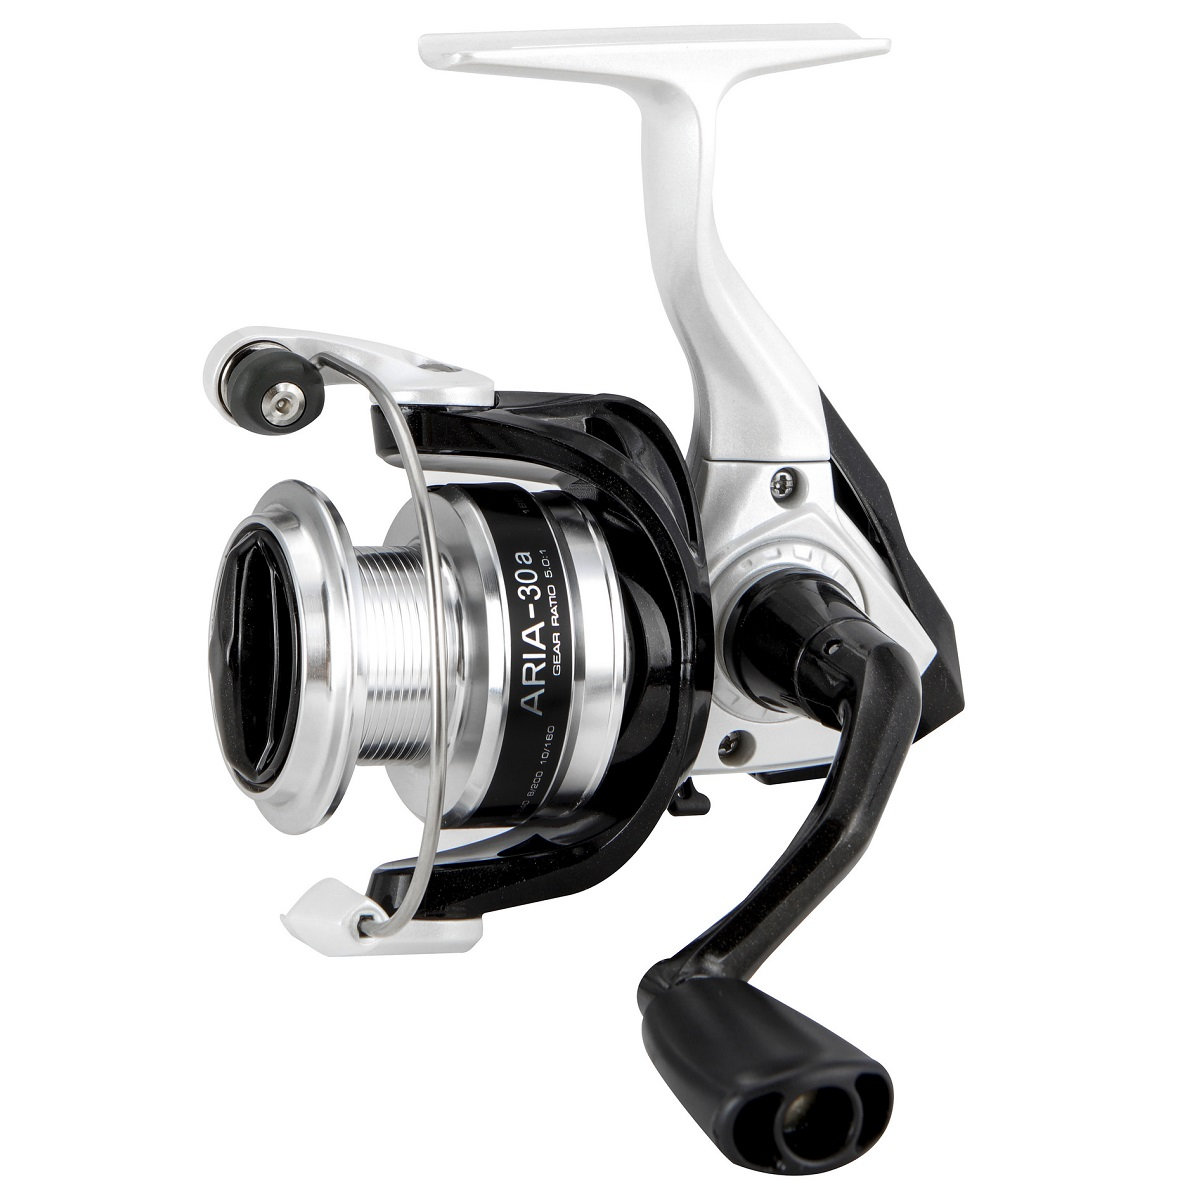 Aria spinning reel 2018 new okuma fishing rods and for Fishing rods and reels